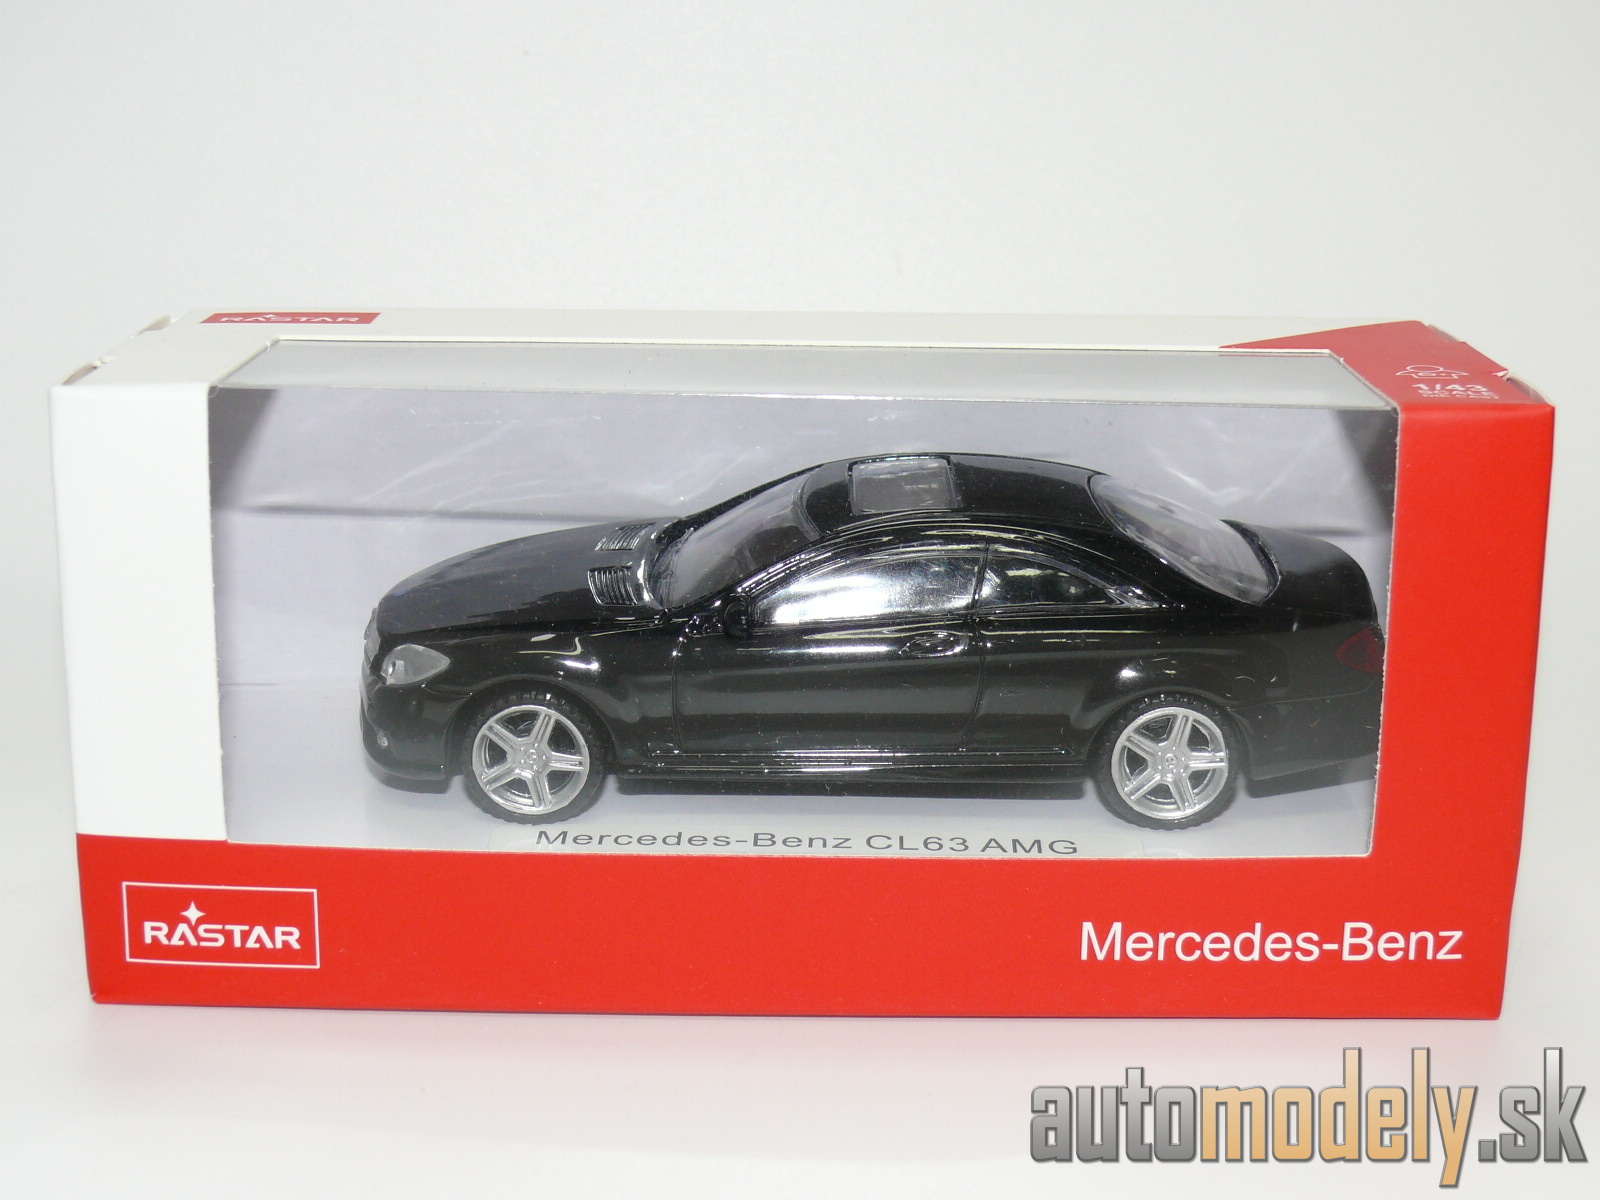 Rastar - Mercedes-Benz CL63 AMG - 1:43